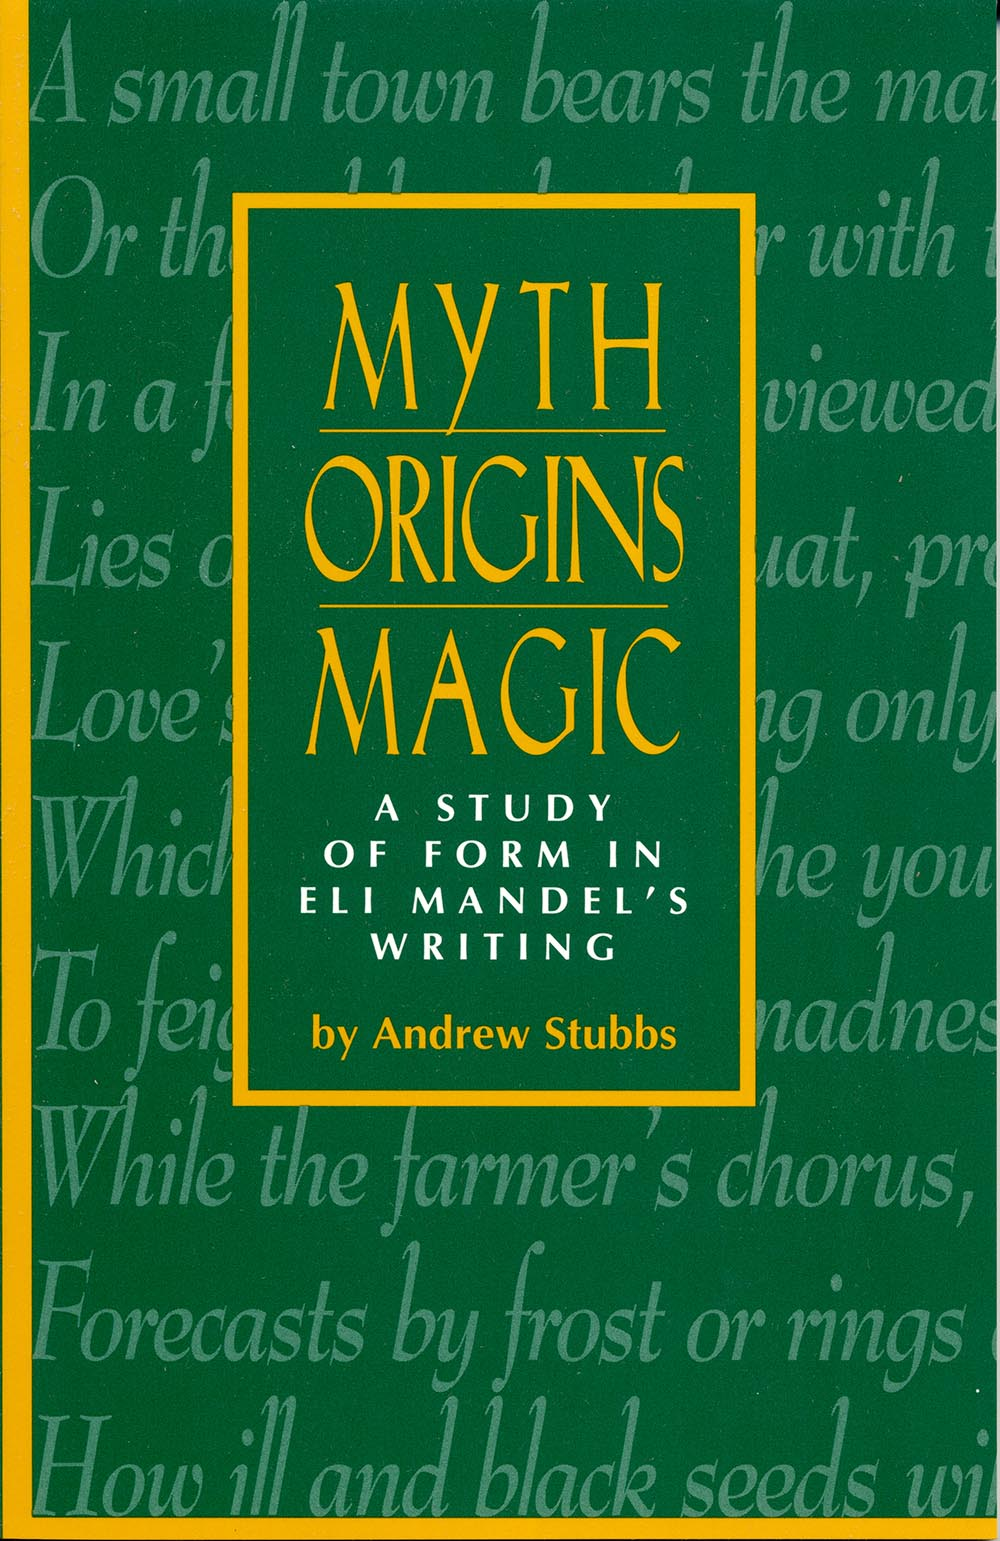 Myth, Origins, Magic by Andrew Stubbs